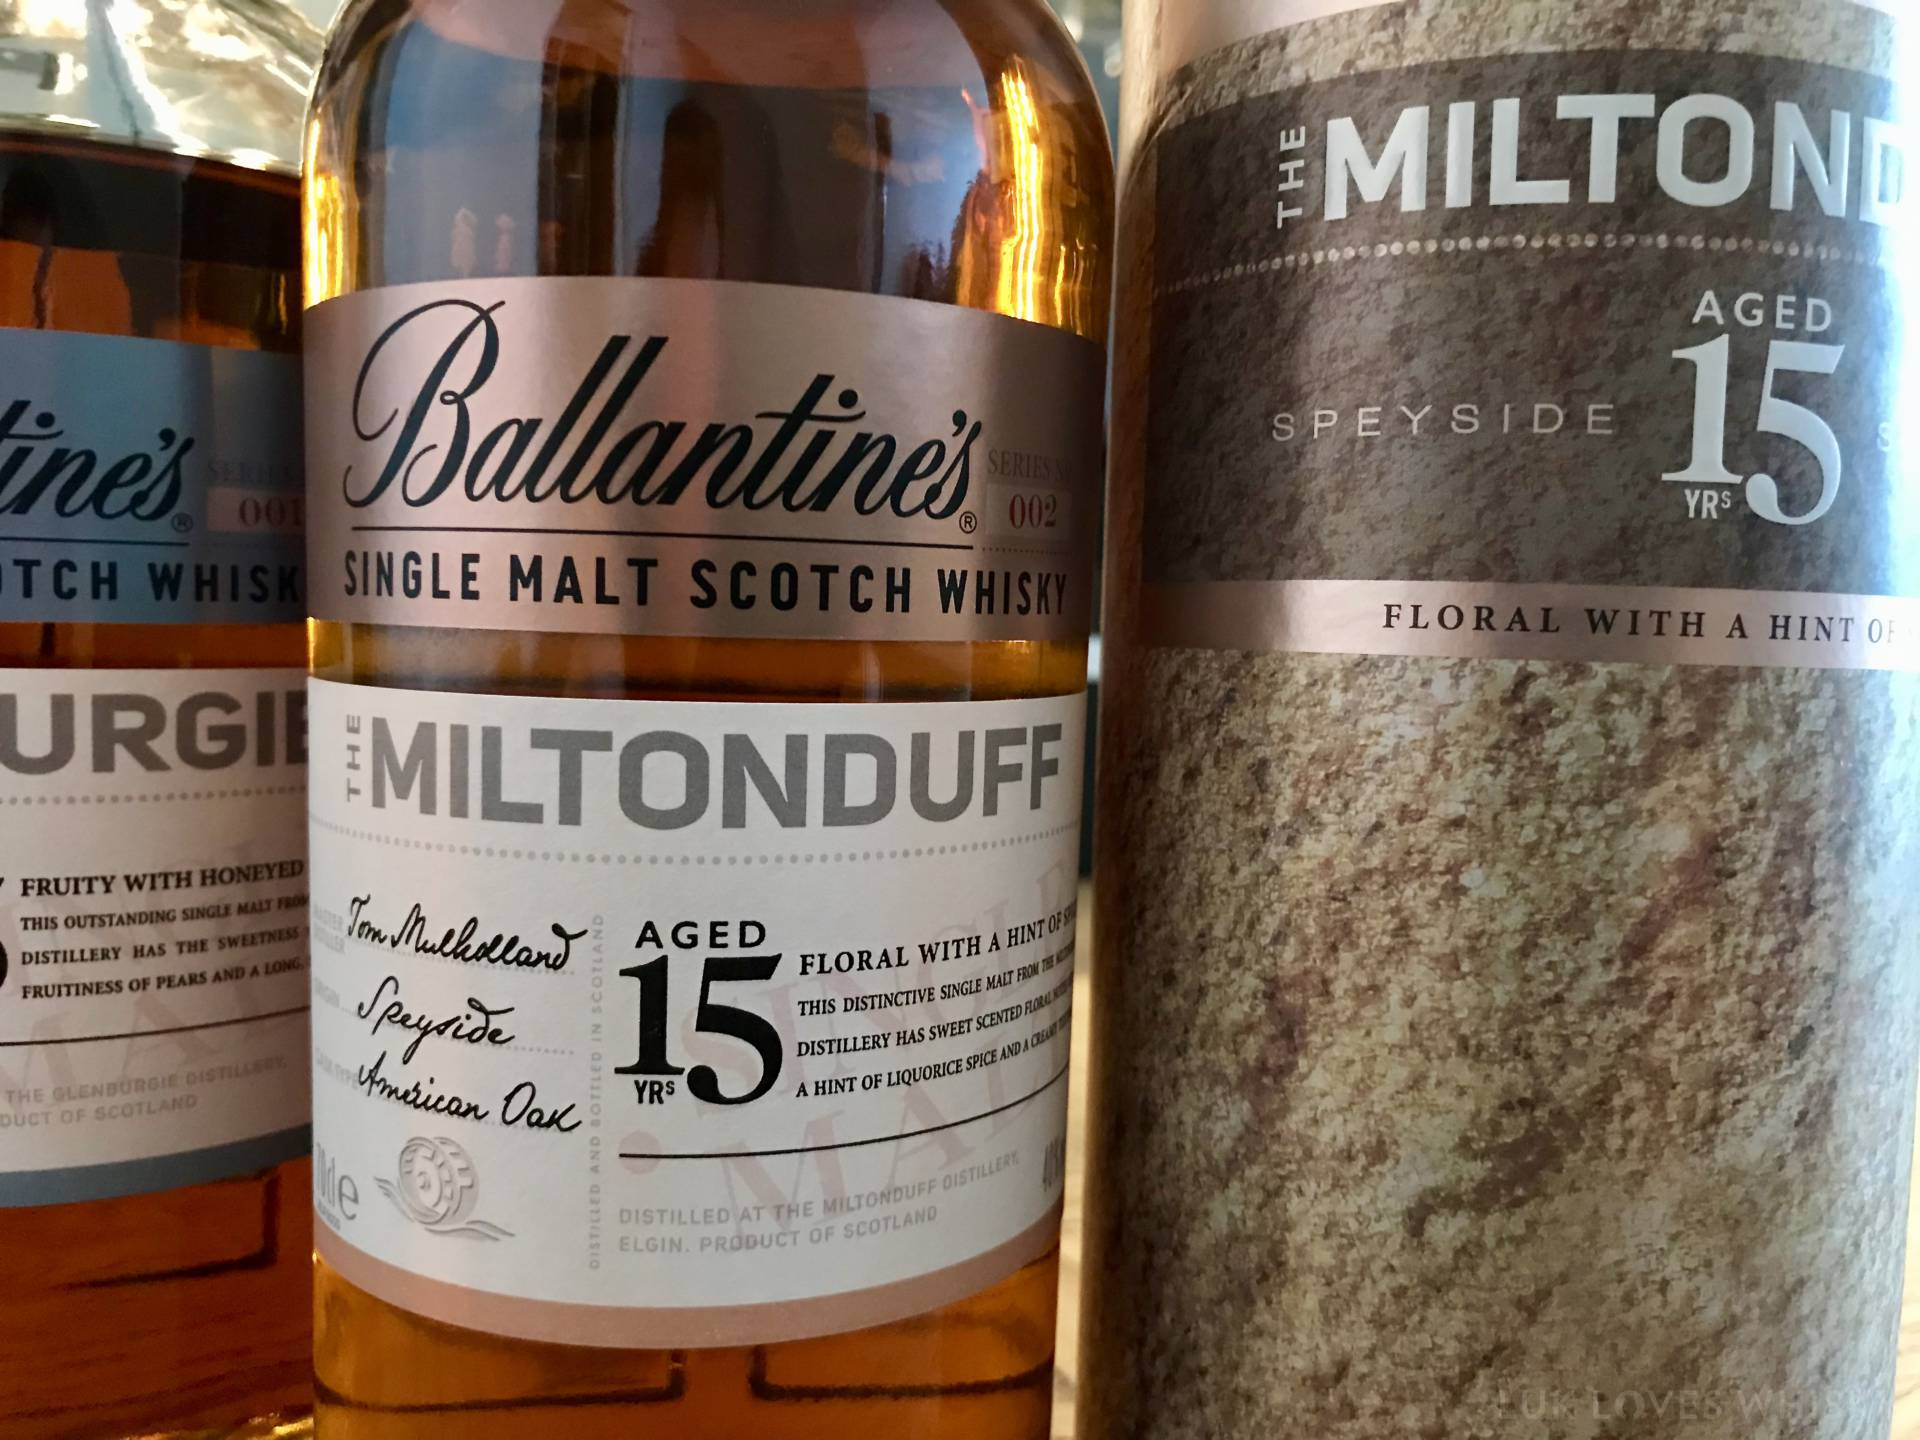 Ballantines Single Malt Scotch Whisky